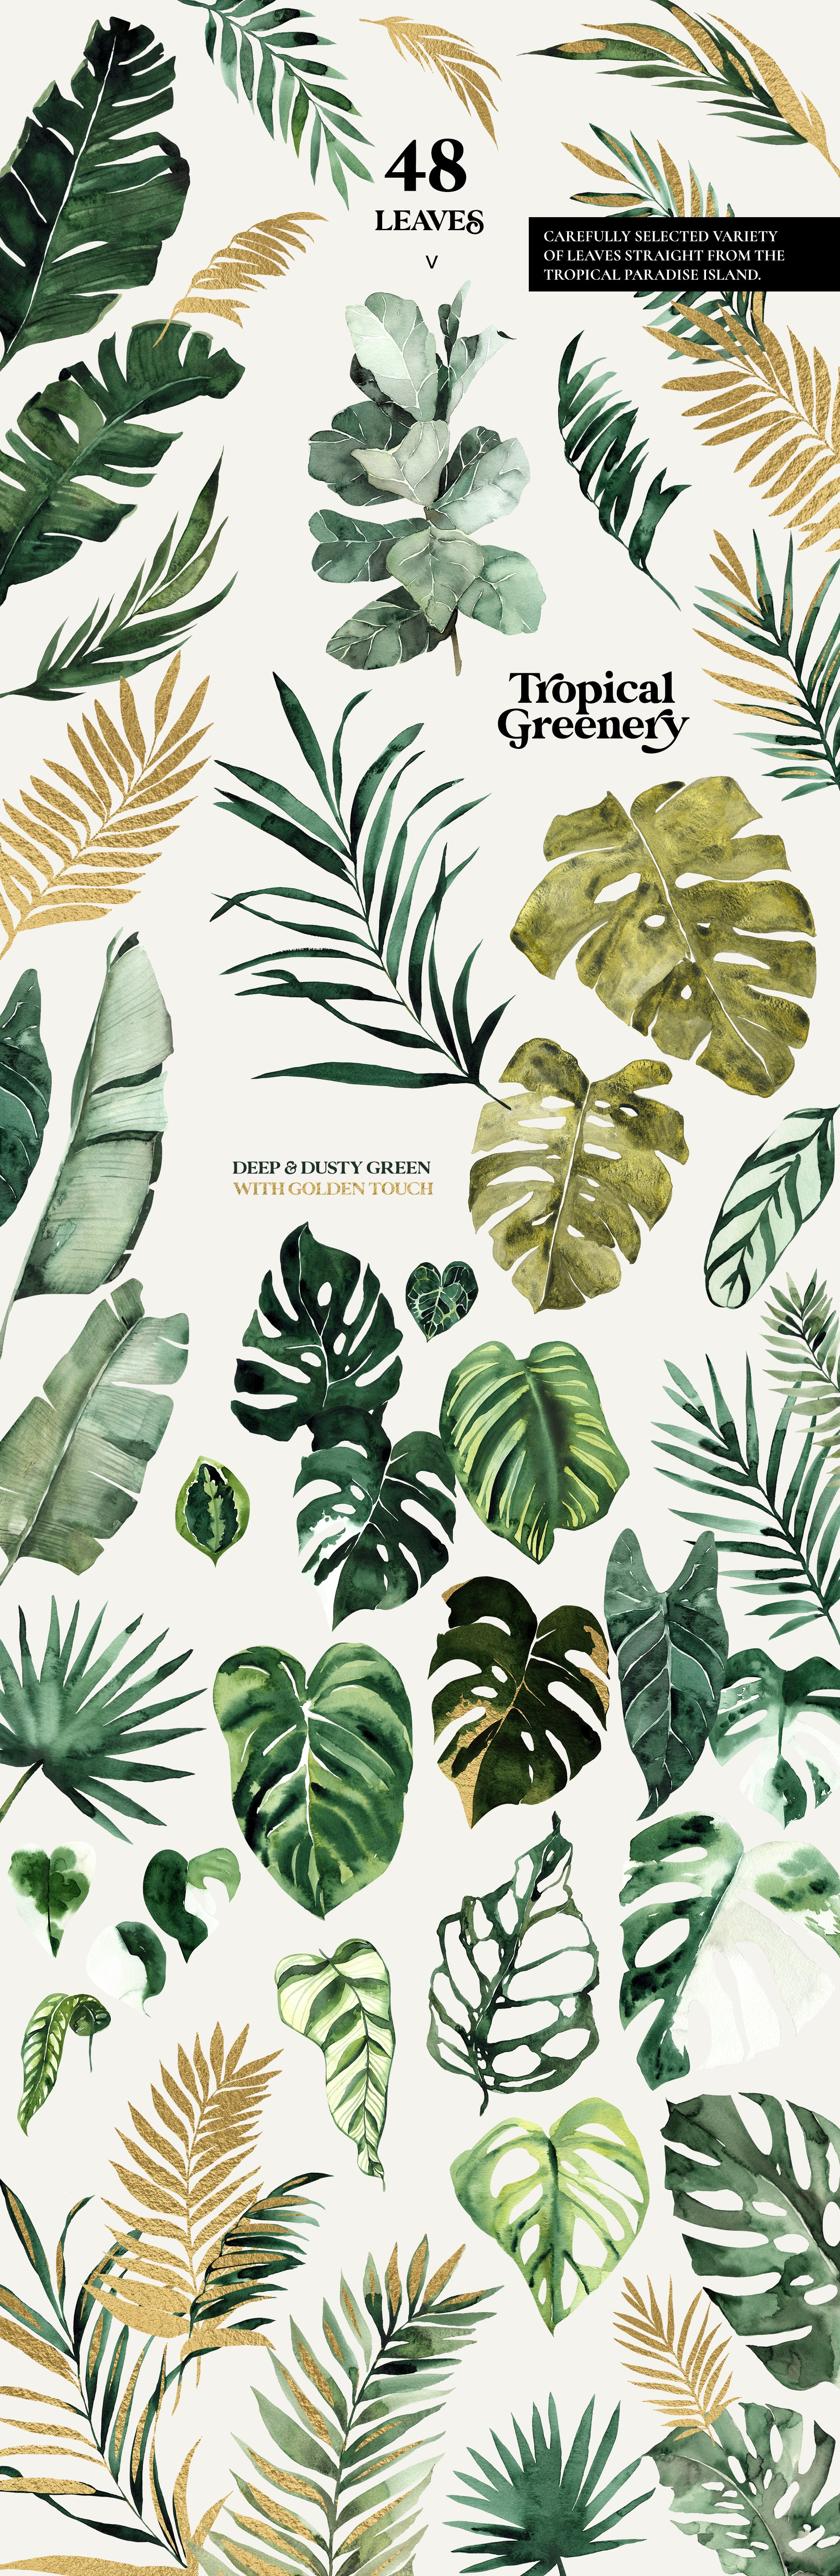 Tropical Greenery - Green and Gold Leaves Set